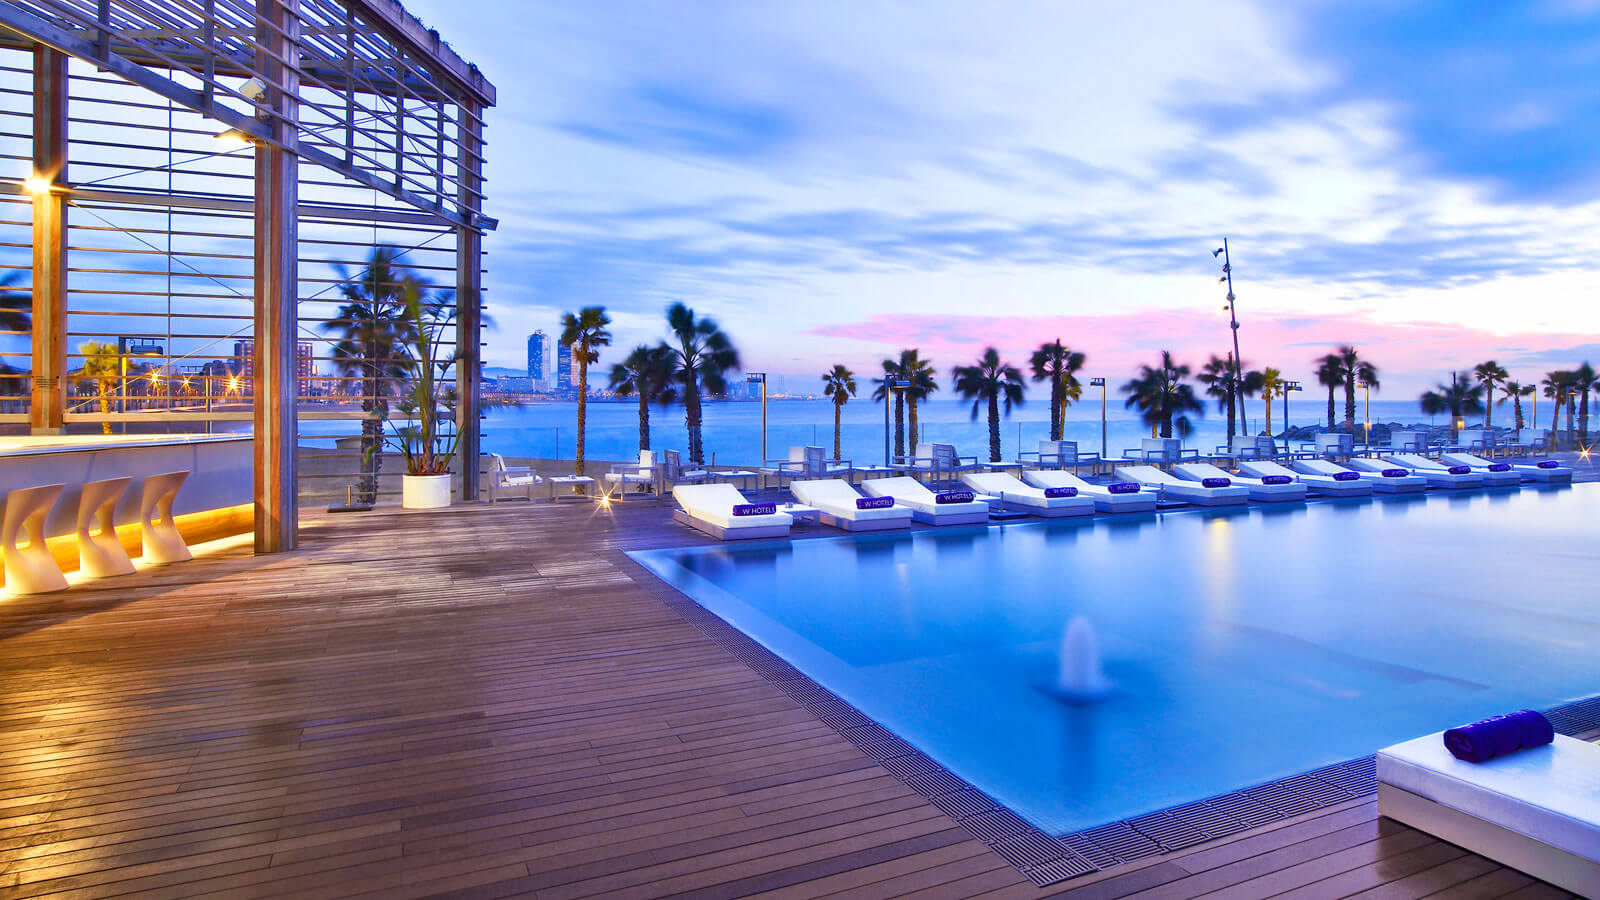 Astounding Outdoor Relaxing Space Design Applied Inside W Hotel Barcelona Near Several Clear Colored Beach Chaises Along With Wide Blue Pool Silver Creek Hotel